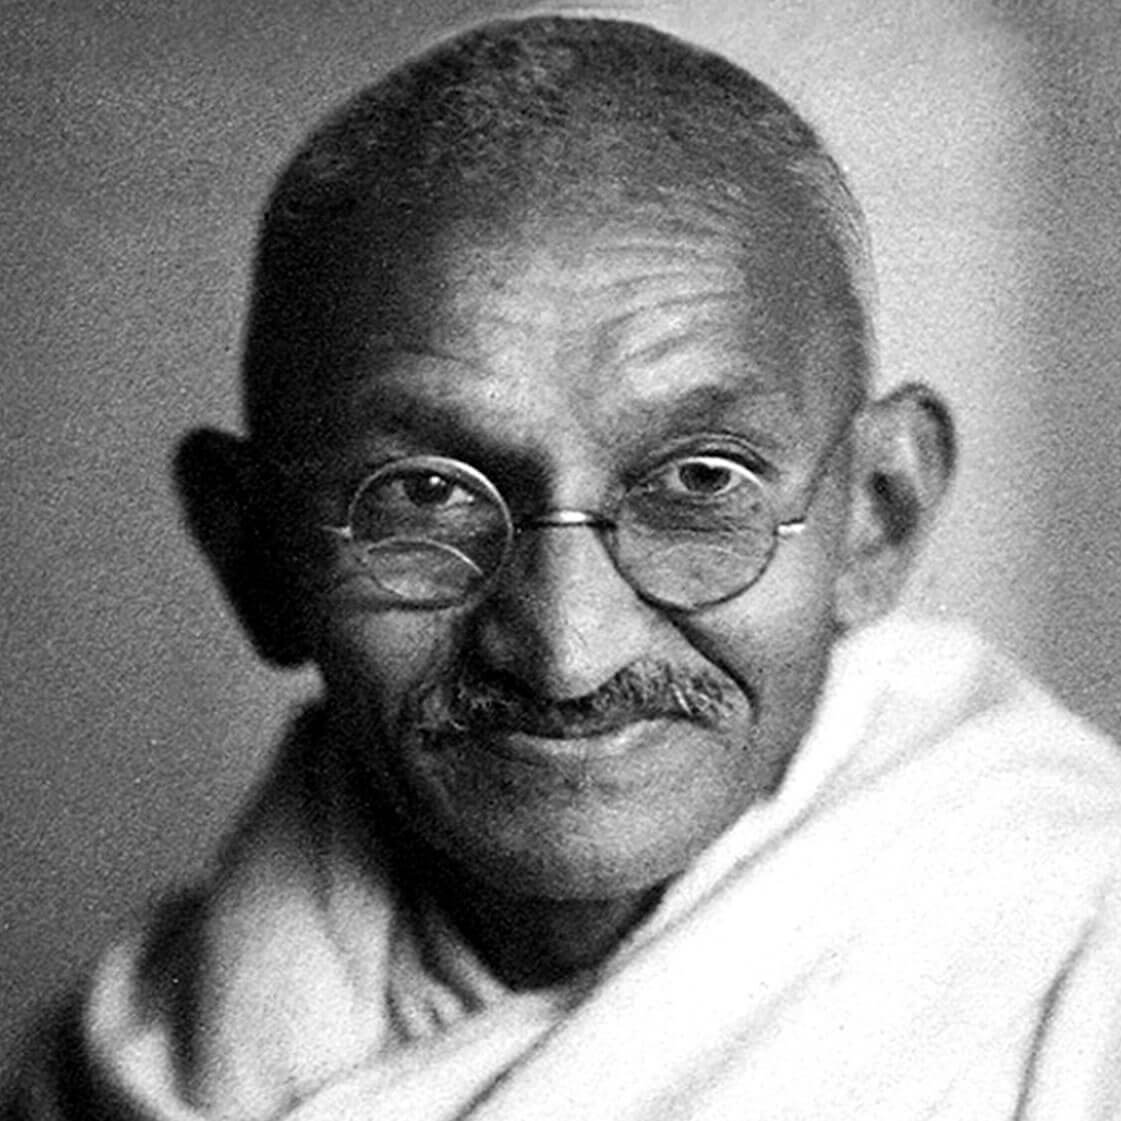 a short biography of mahatma gandhi Life of mahatma gandhi early life and education: mahatma gandhi (early name: mohandas karamchand gandhi) was born at porbandar in western india, on october 2, 1869 in his autobiography, gandhiji has given a true record of his early life his father was the diwan of porbandar and of rajkot.